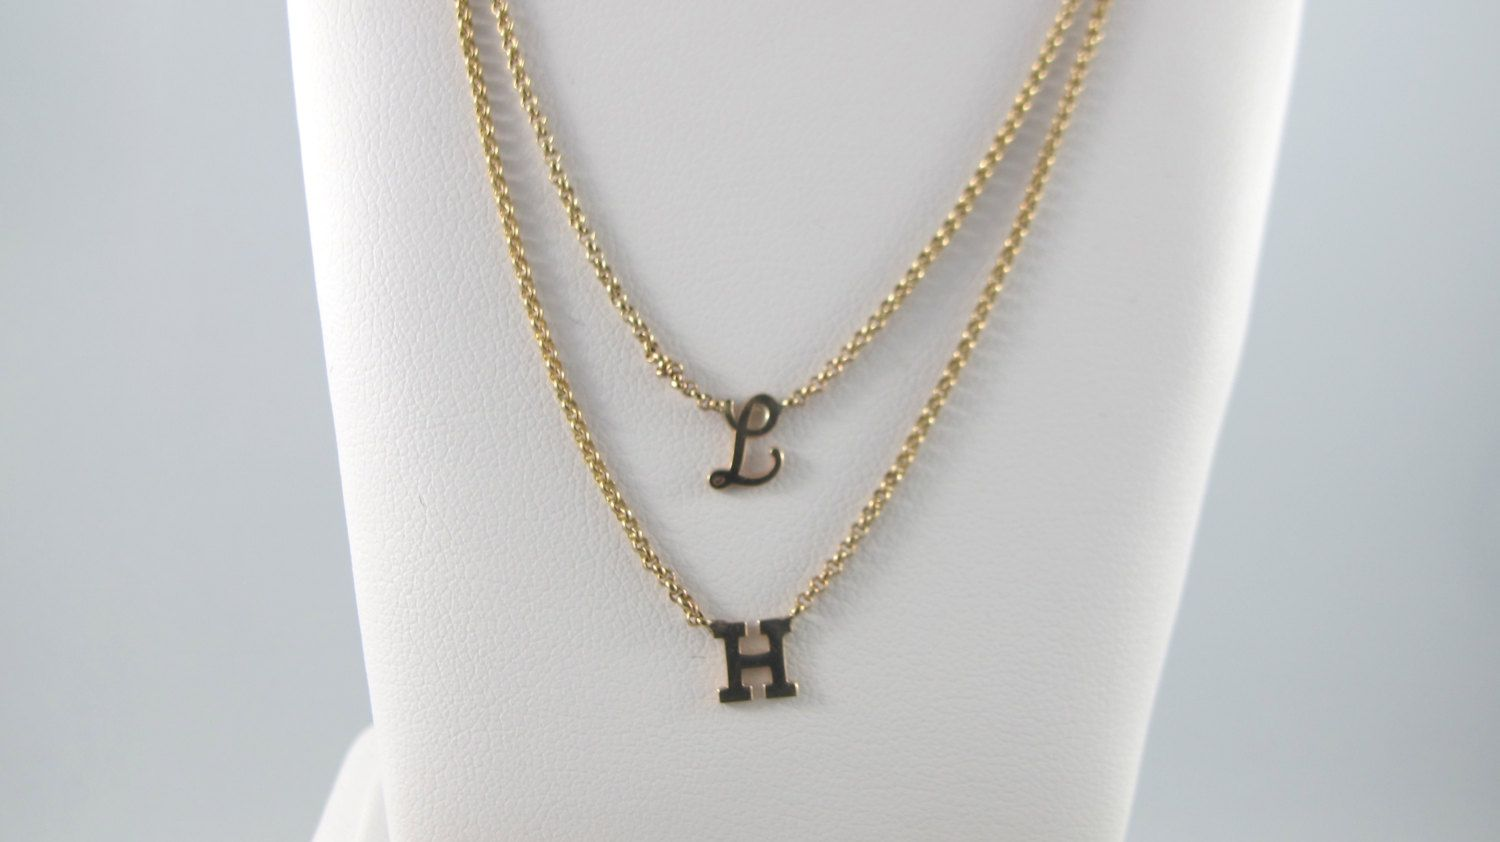 Tiny Initial Necklace In Cursive 10kt Yellow Gold Pin4etsy